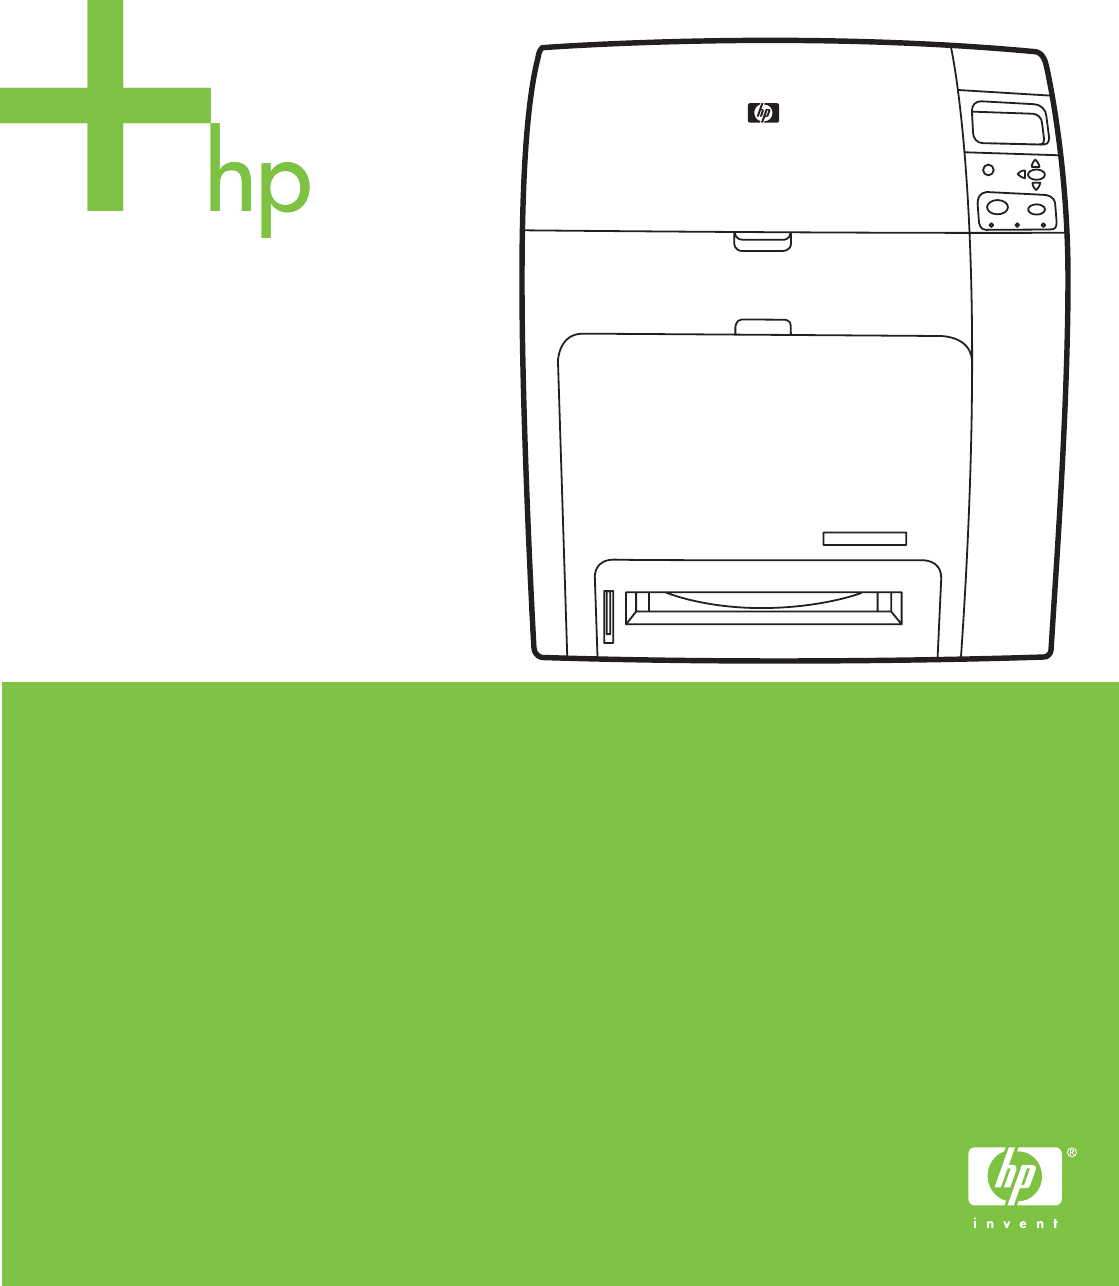 HP Color LaserJet 4700/CP4005 Series. Service Manual